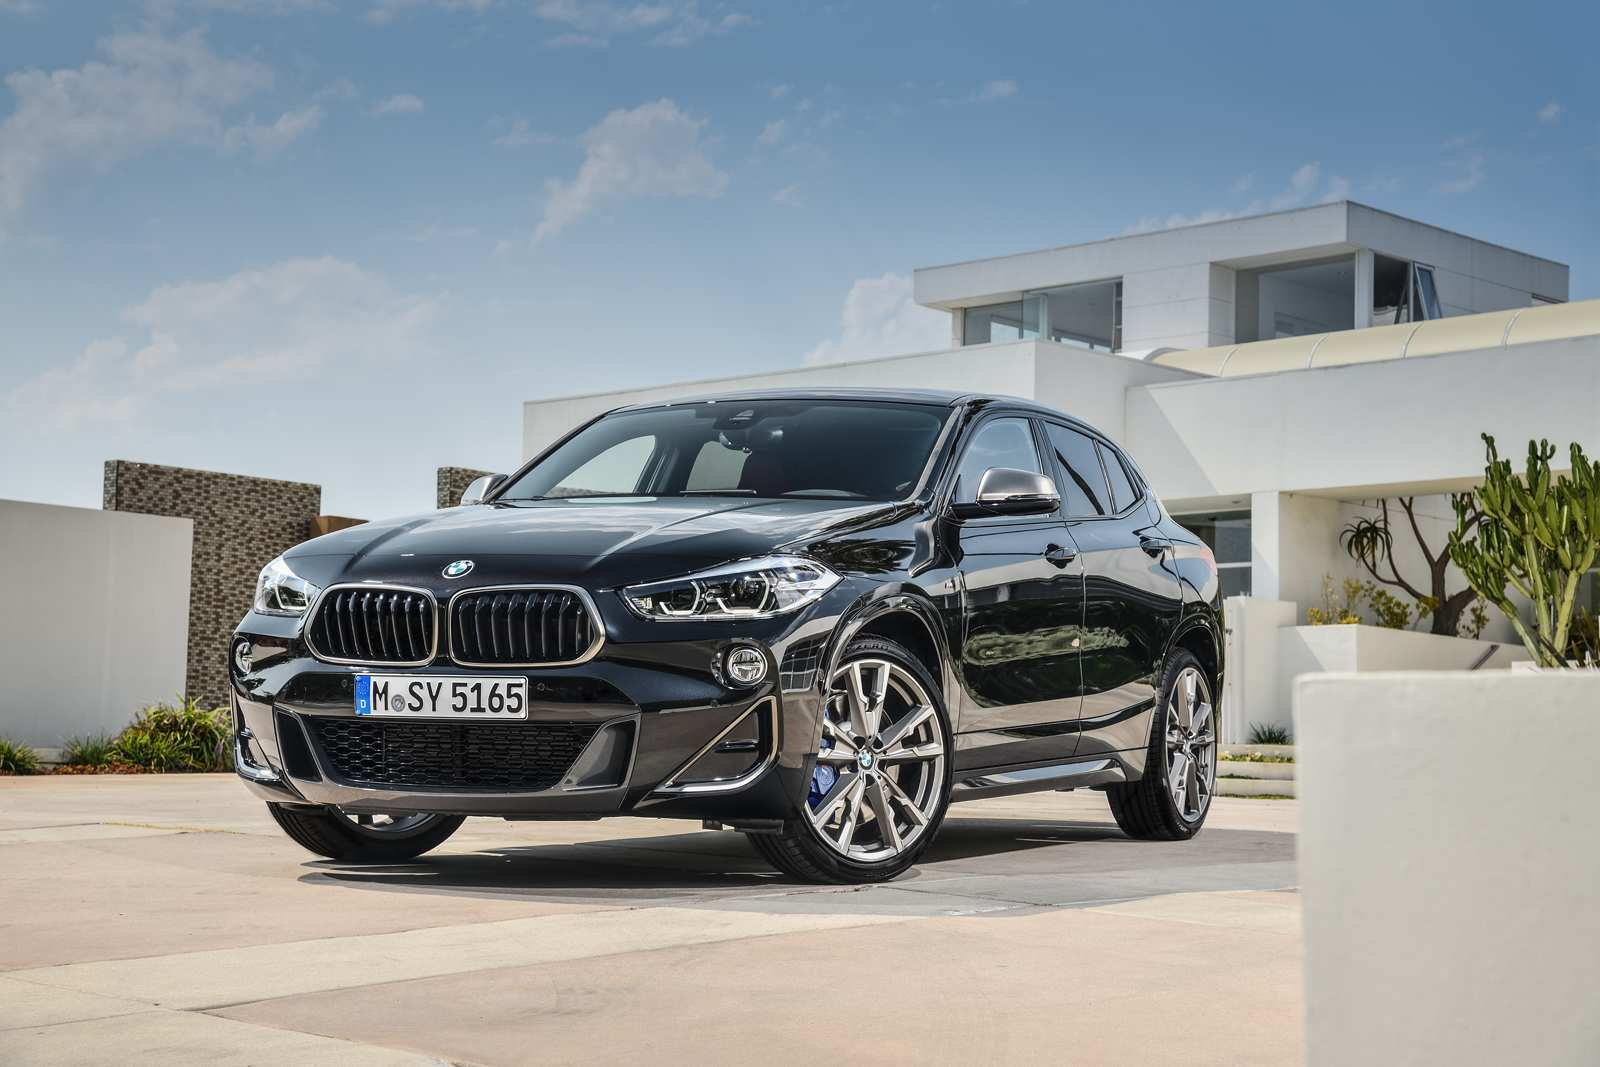 42 Best 2019 Bmw Canyon Forum Images